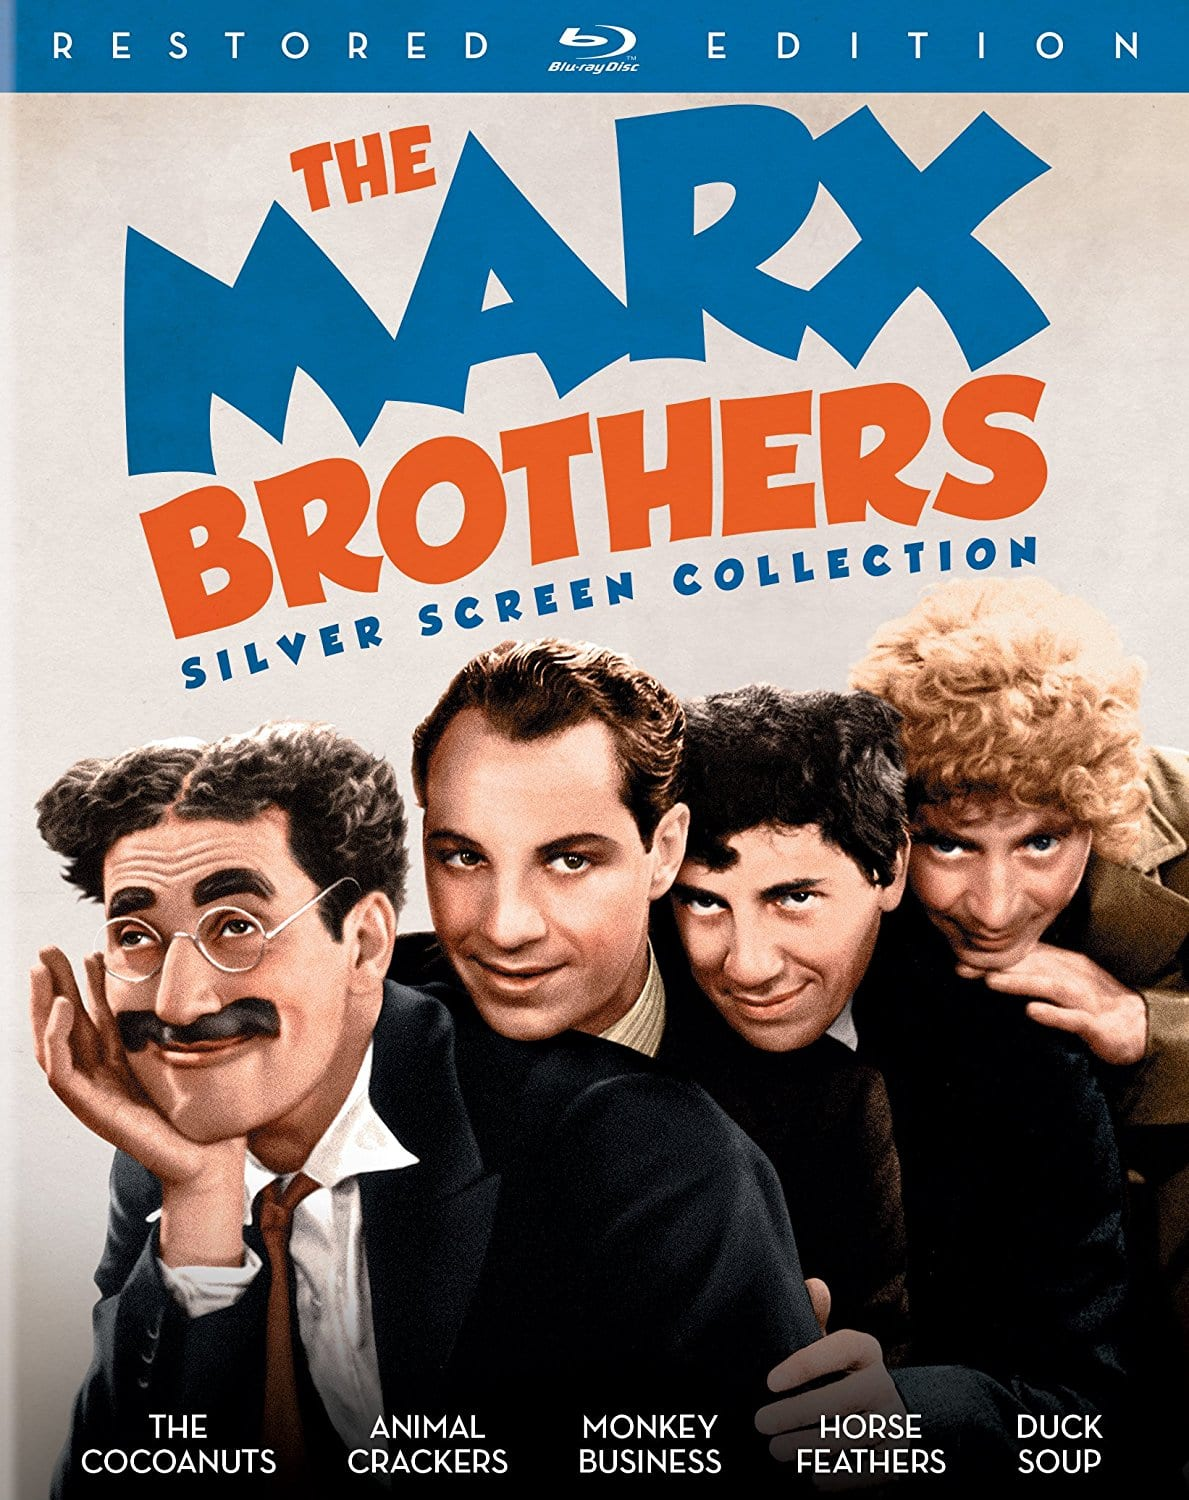 The Marx Brothers Silver Screen 5-Film Collection (Blu-ray) $17.49